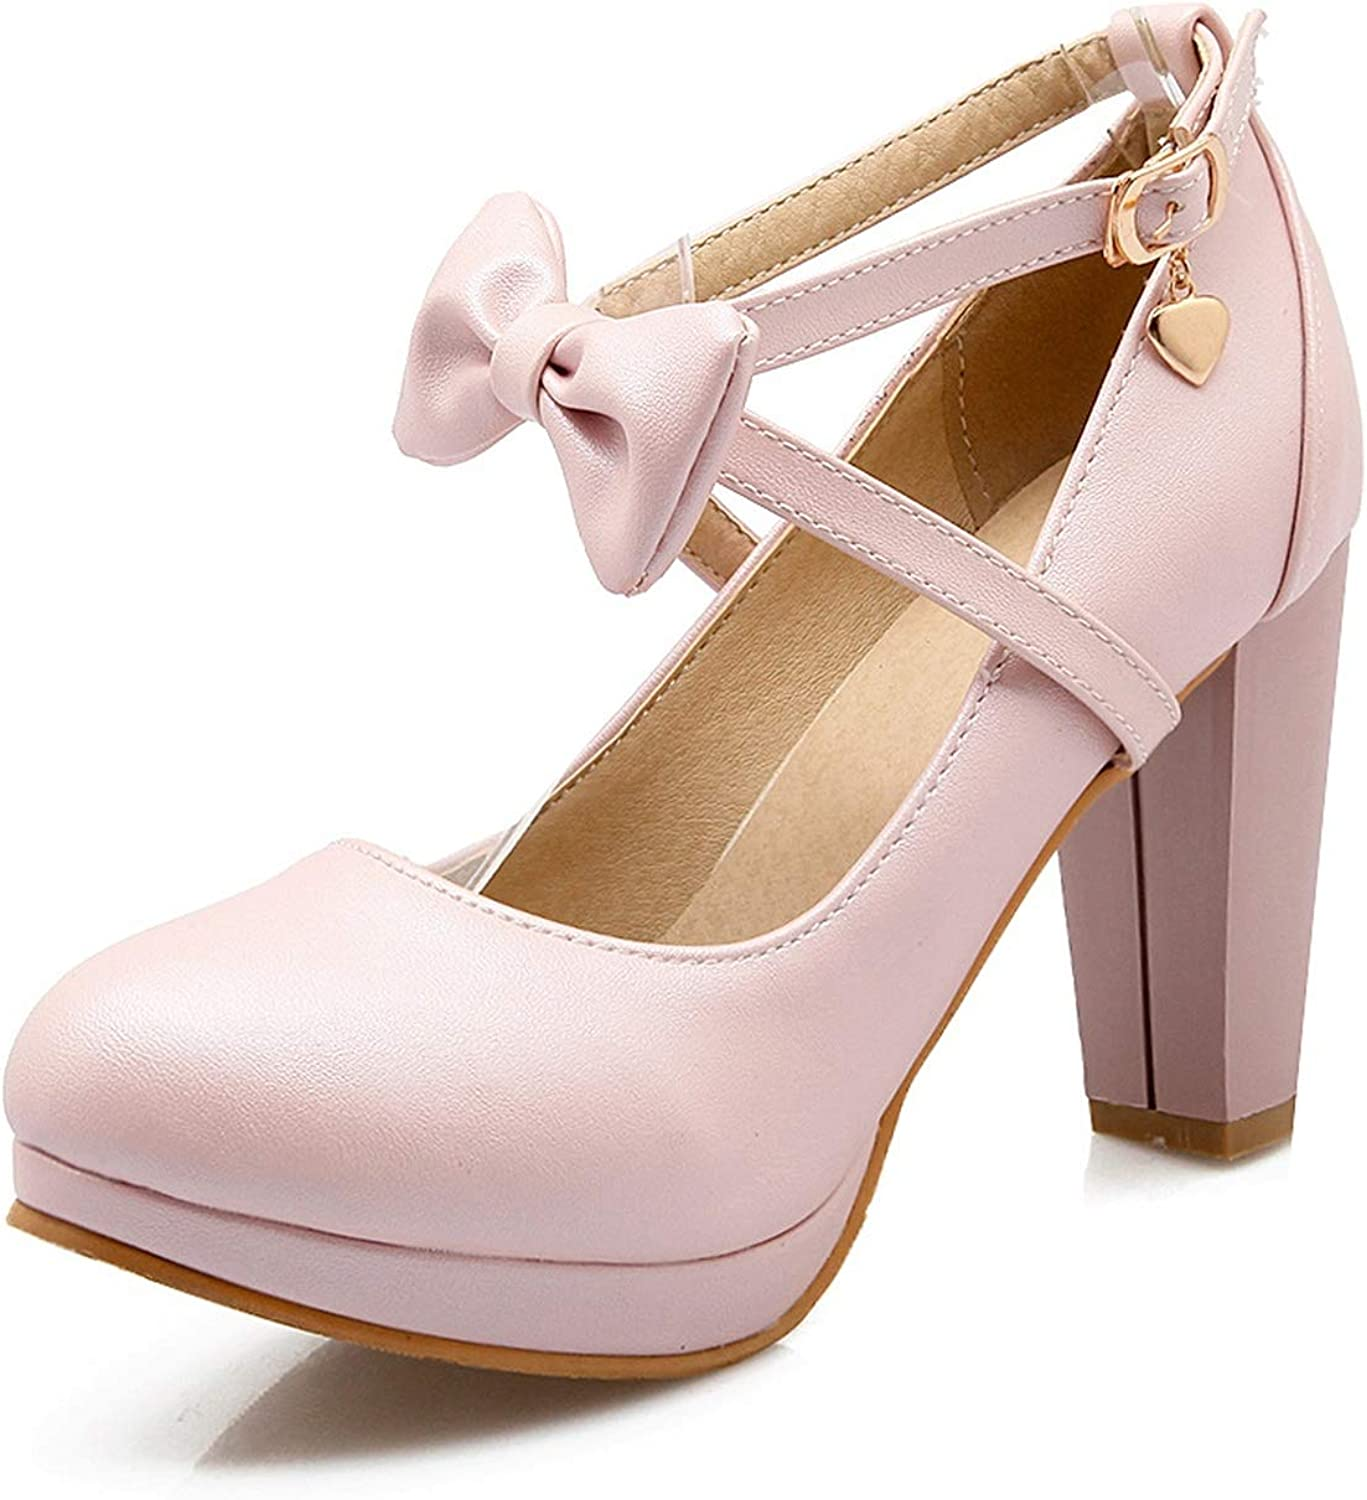 Sweet Cross Lacing High Heels Bow Buckle Belt Shallow Mouth Single shoes 42 43 Thick Heel